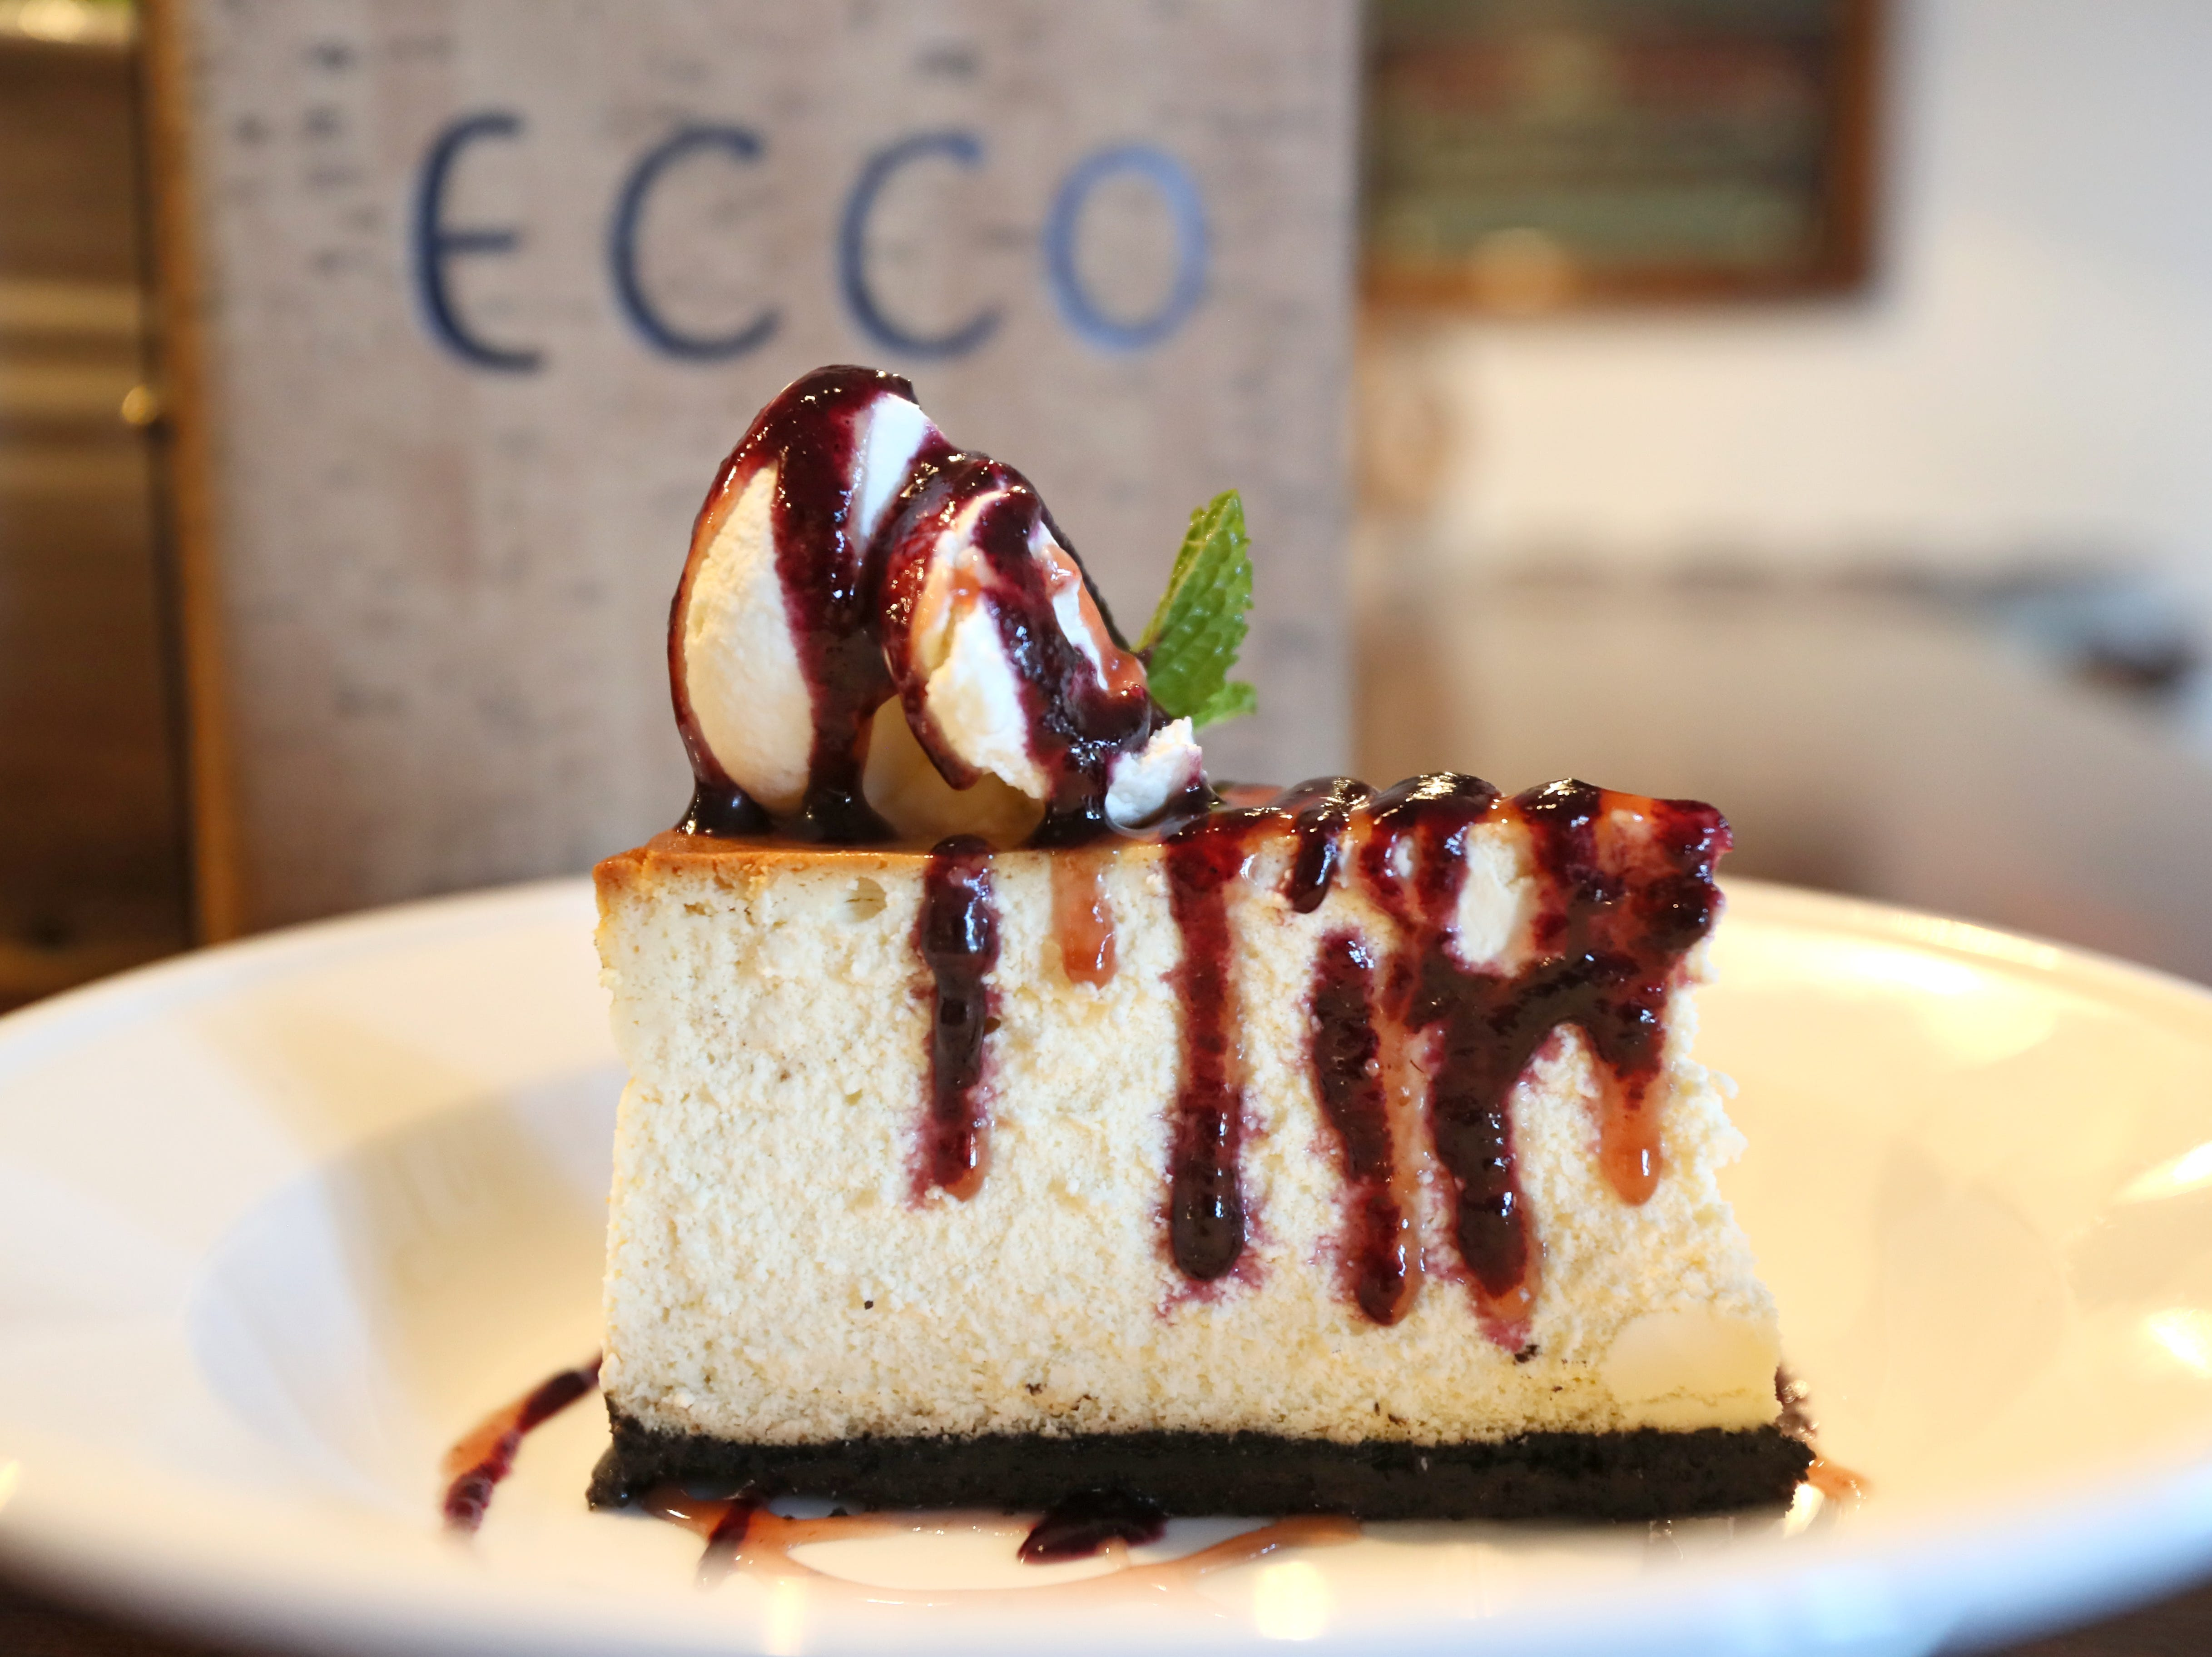 Cheesecake with blueberry and strawberry puree, whipped cream and mint sprigs at Ecco Restaurant in Midtown's Evergreen Historic District.